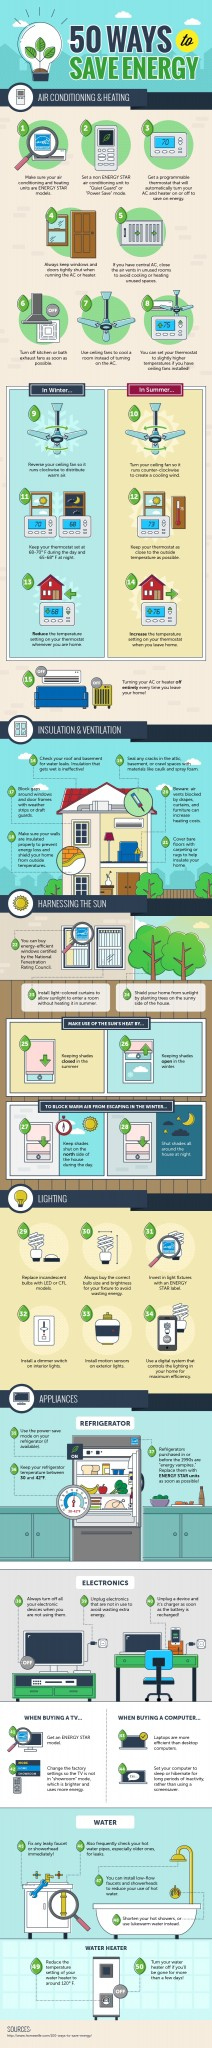 50 Ways To Save Energy from Homeselfe